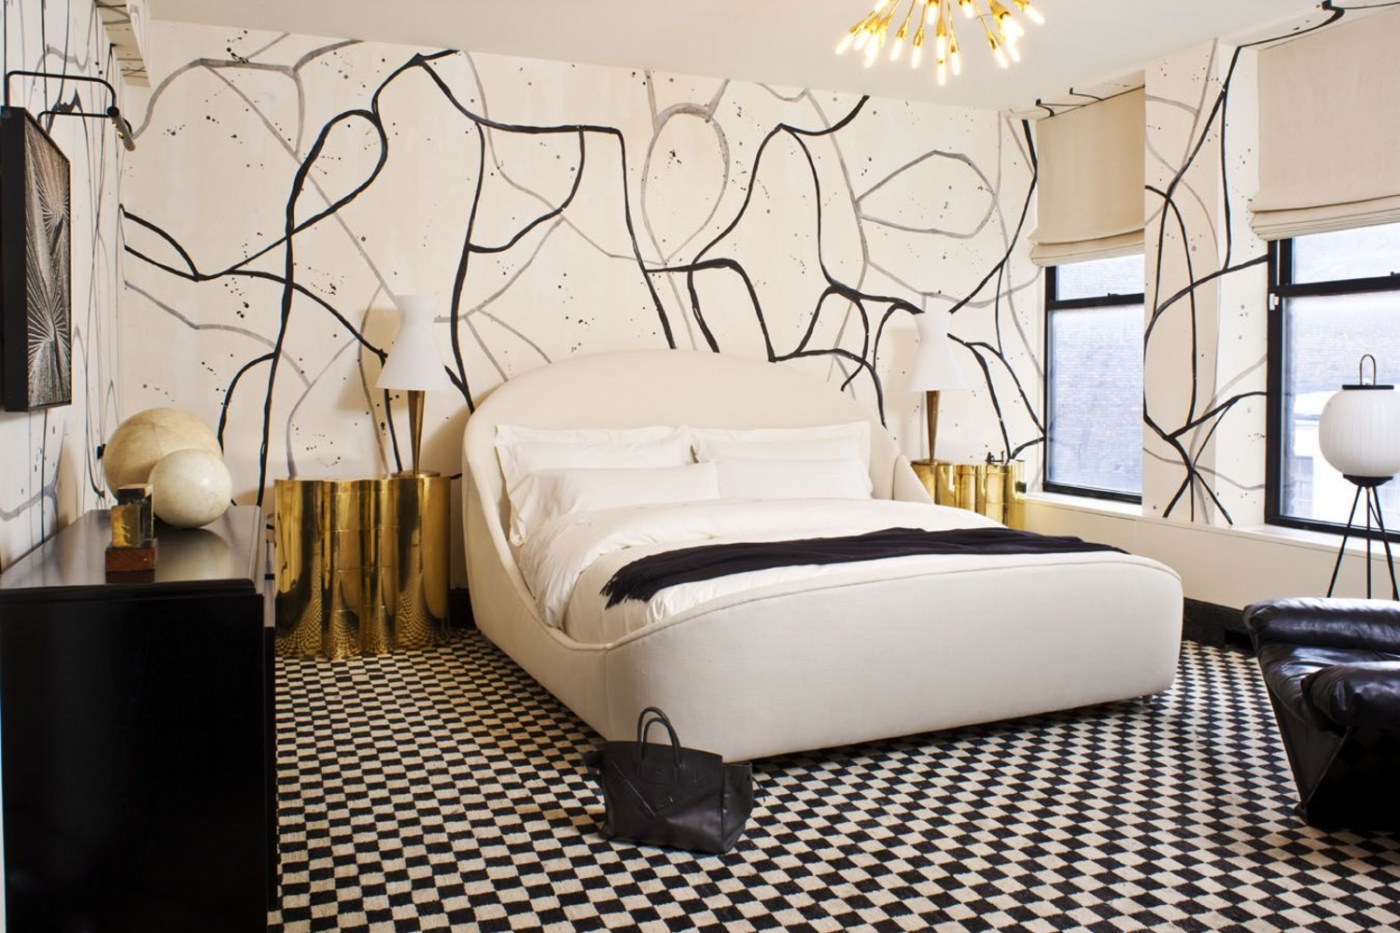 bedroom design How To Create A Bedroom Design That Will Bring You Luxury How To Create A Bedroom Design That Will Bring You Luxury 3 1 1400x933